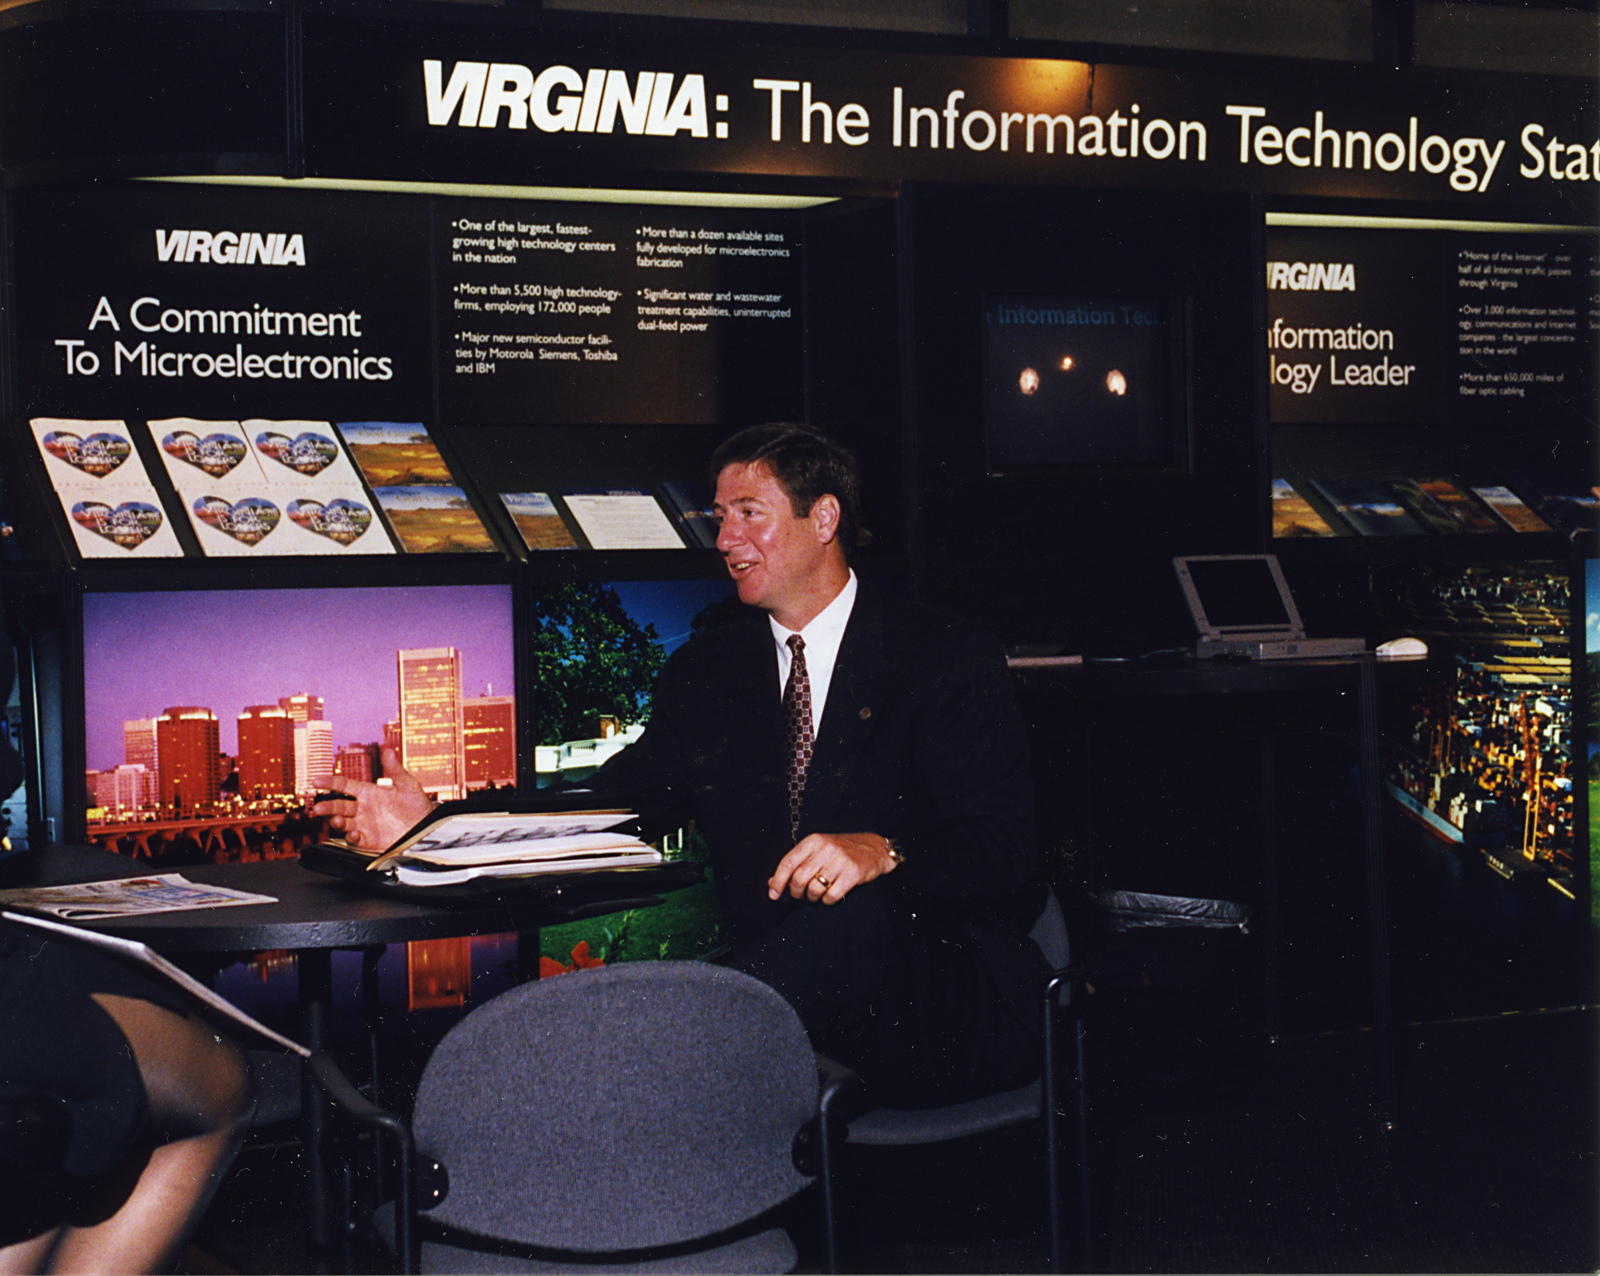 Virginia Governor, George F. Allen attends the World Conference on Information Technology, George Mason University, 1998